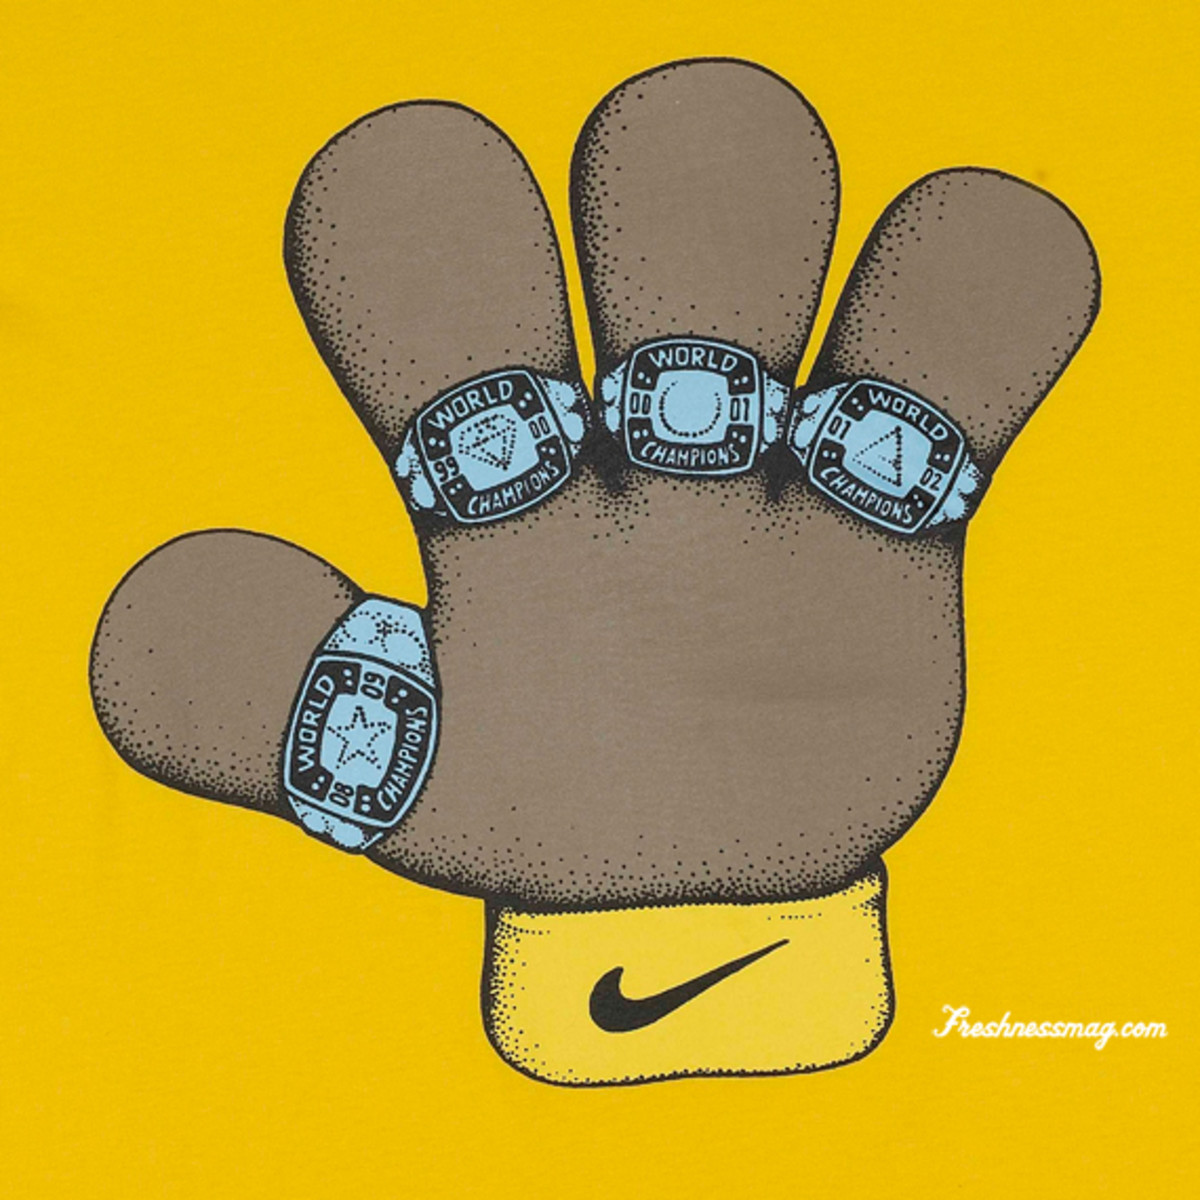 Nike  Kobe Bryant Most Valuable Puppets - 4 Rings Tee China Edition